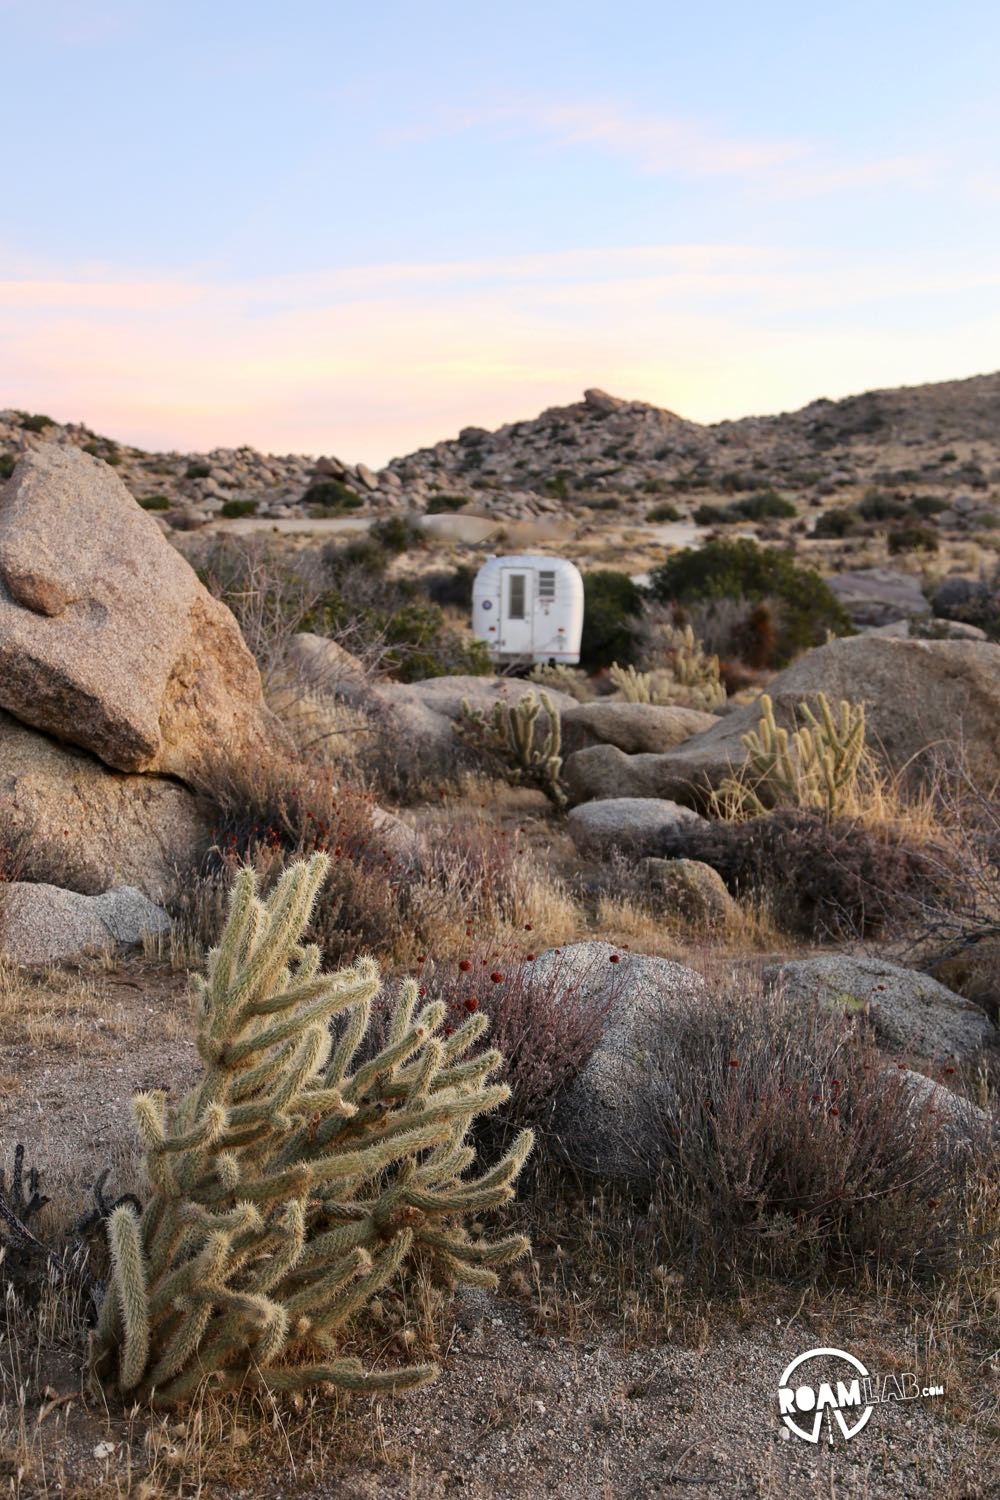 Morning dawns on our Avion Ultra C11 truck camper in Culp Valley Primitive Campground, Anza-Borrego Desert State Park